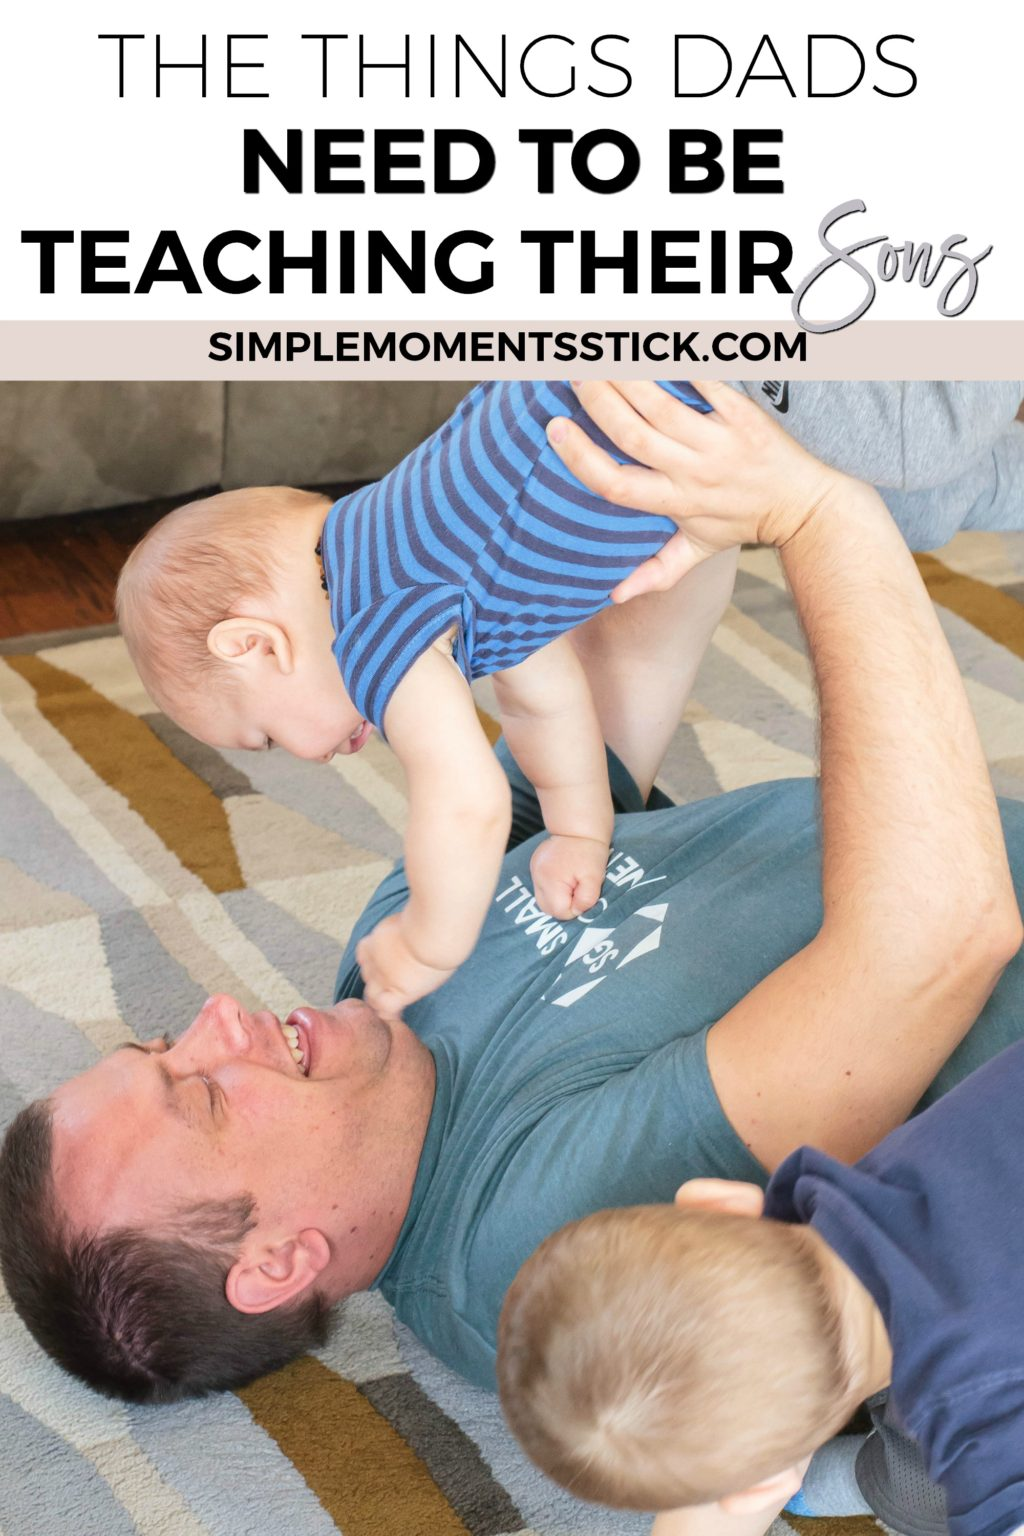 There are ten things I believe every dad should teach his sons - and they're not what you'd think!